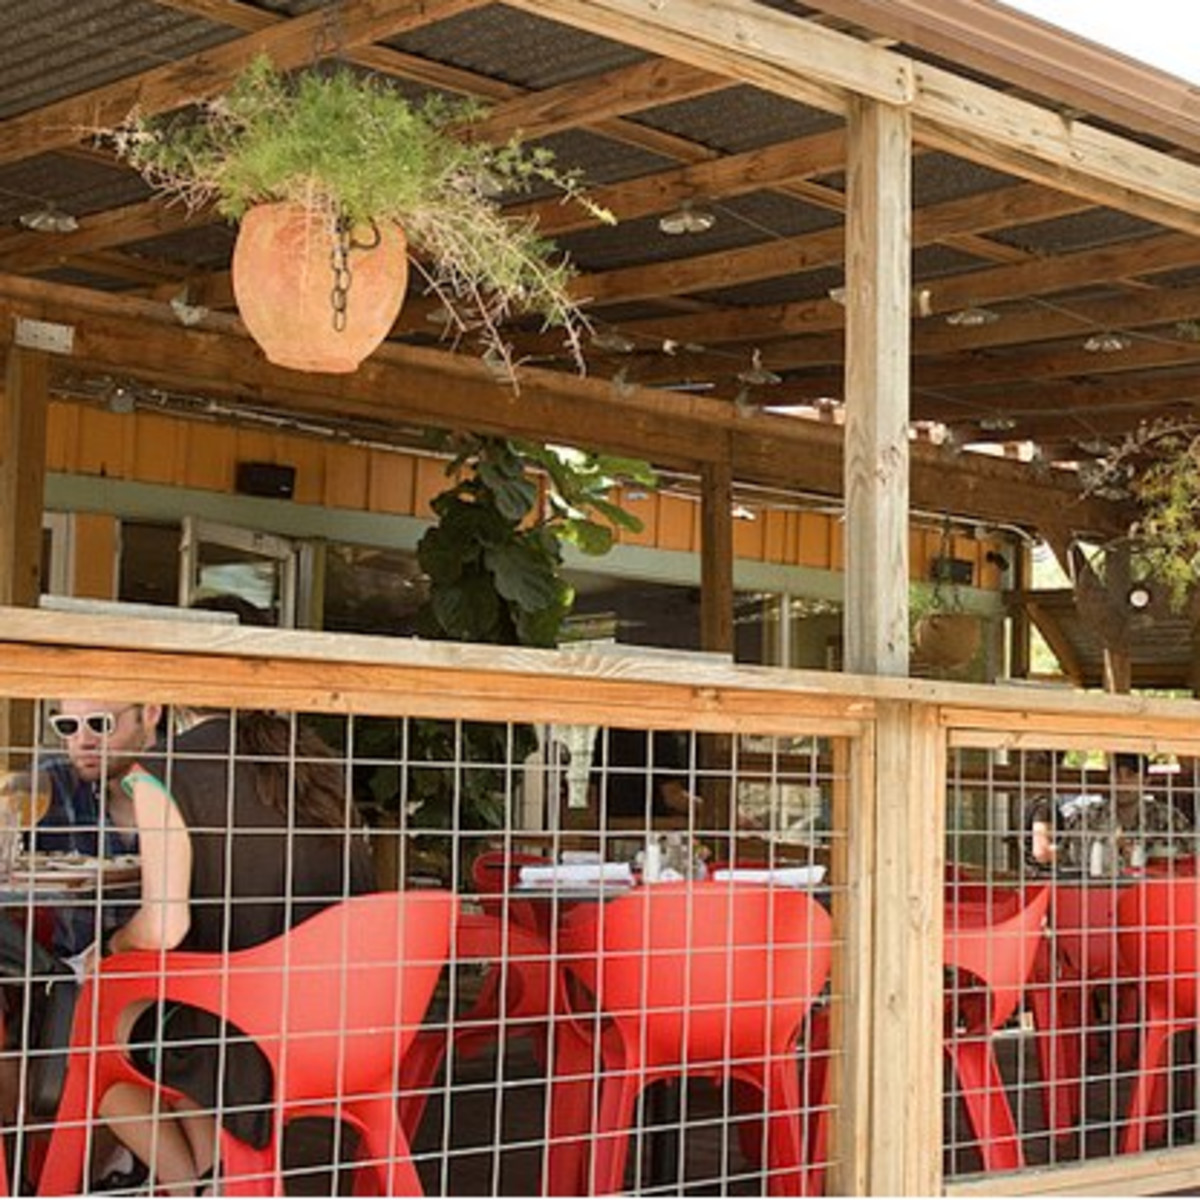 Austin photo: Places_Food_El Chile_Exterior